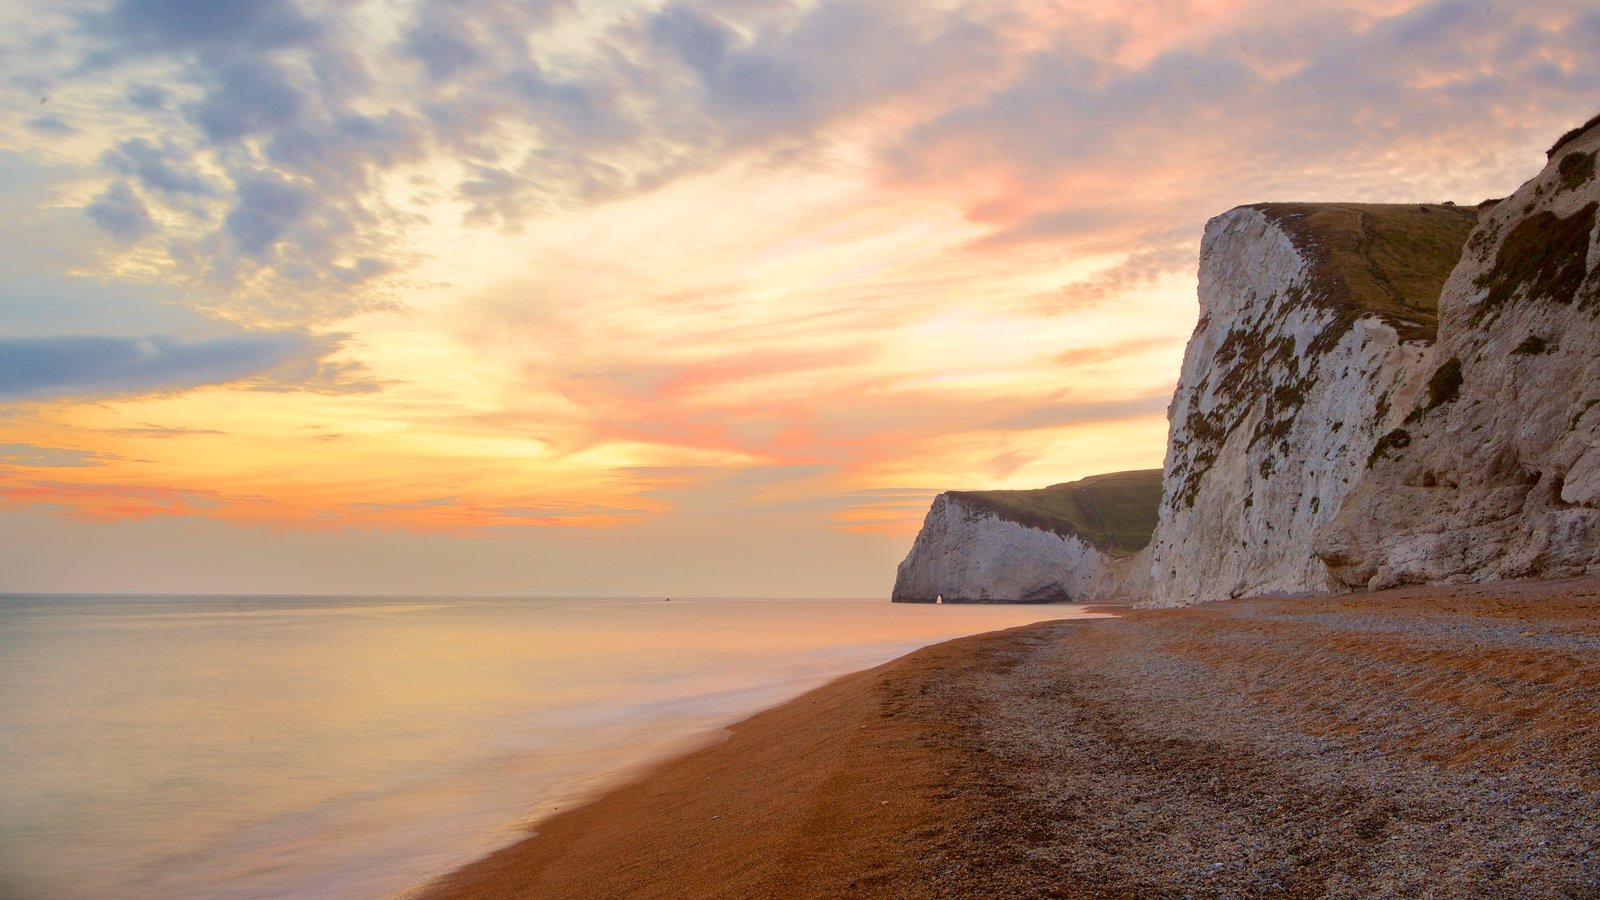 Durdle Door which includes rugged coastline, a sunset and a pebble beach